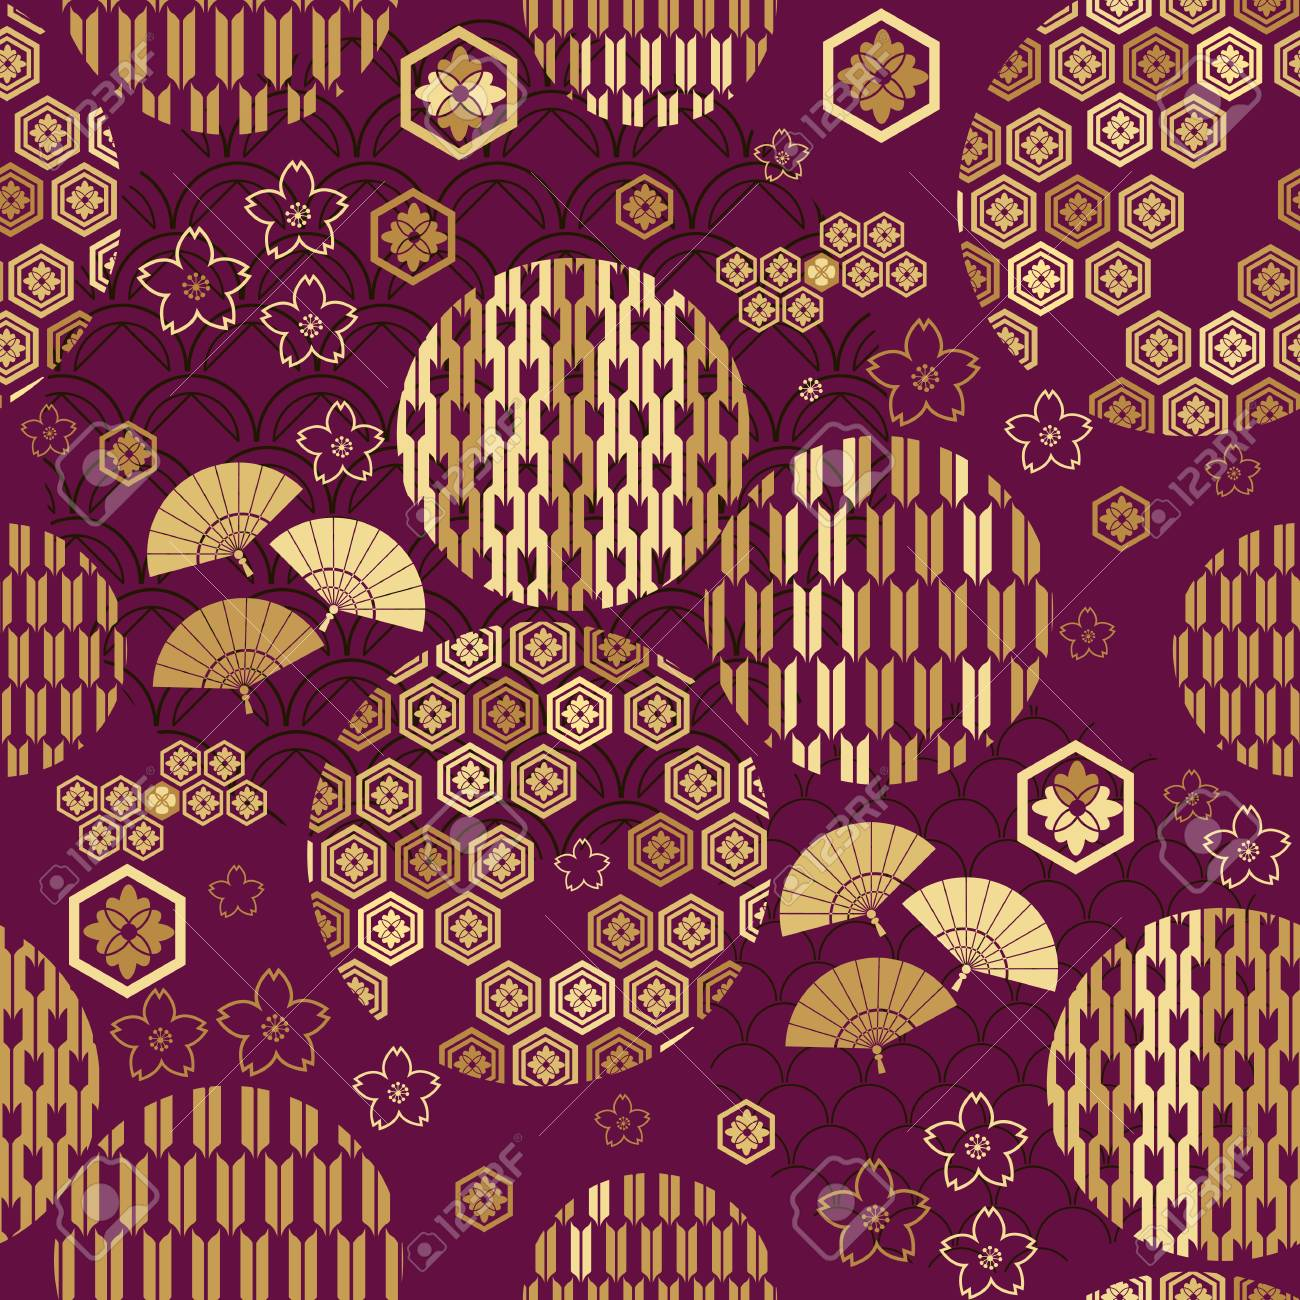 Beautiful japanese seamless pattern with clouds, waves and flowers. Vector unique seamless asian texture.For printing on packaging, textiles, paper,book covers, manufacturing, wallpapers,bags, scrapbooking. - 100738045